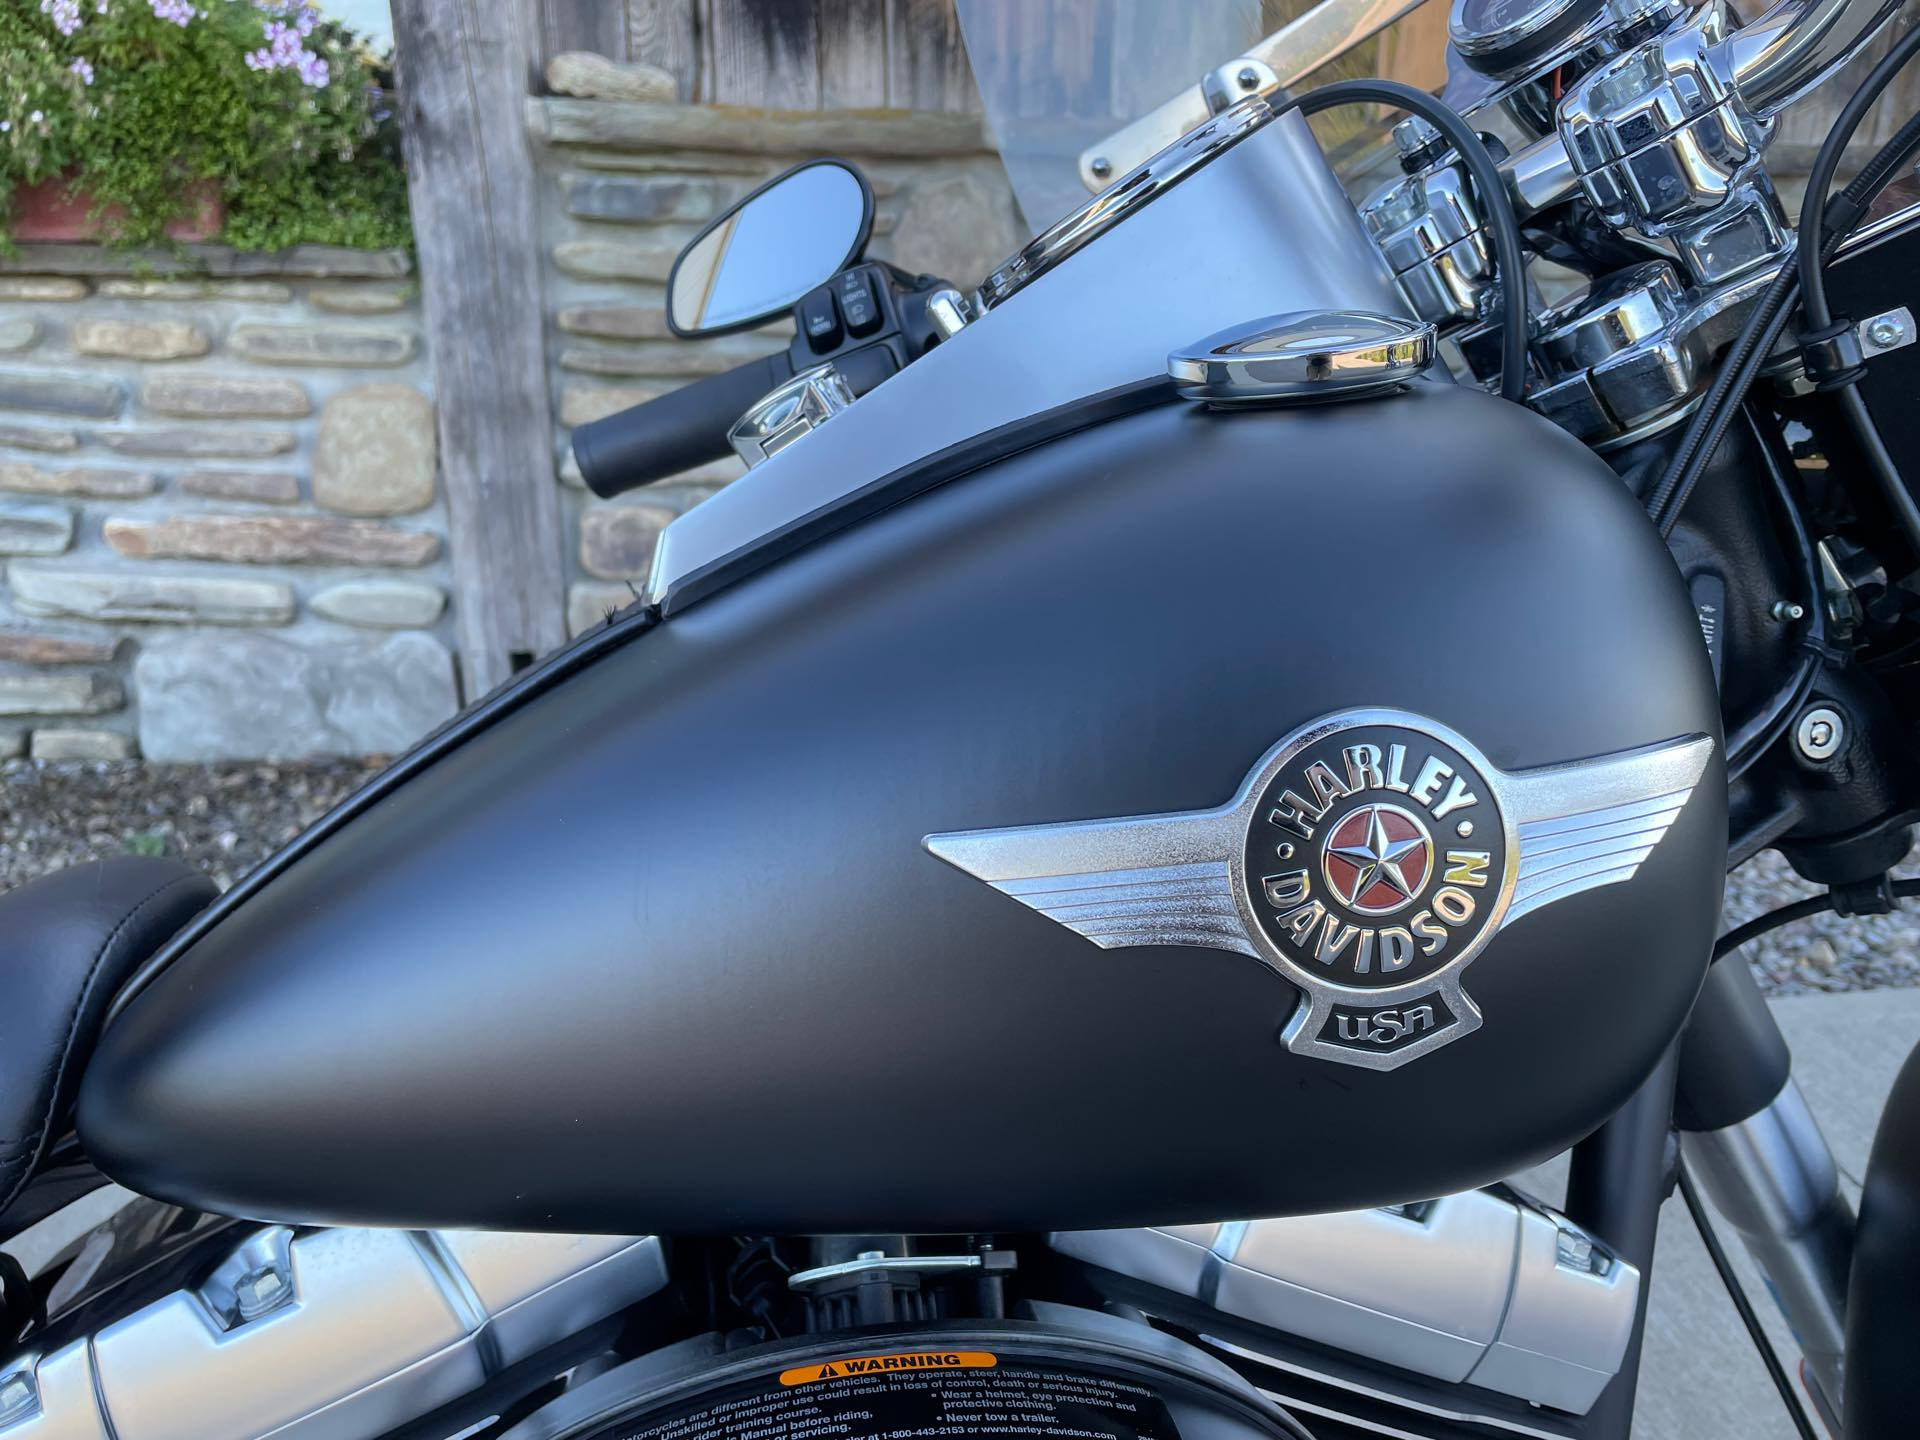 2010 Harley-Davidson Softail Fat Boy Lo at Arkport Cycles